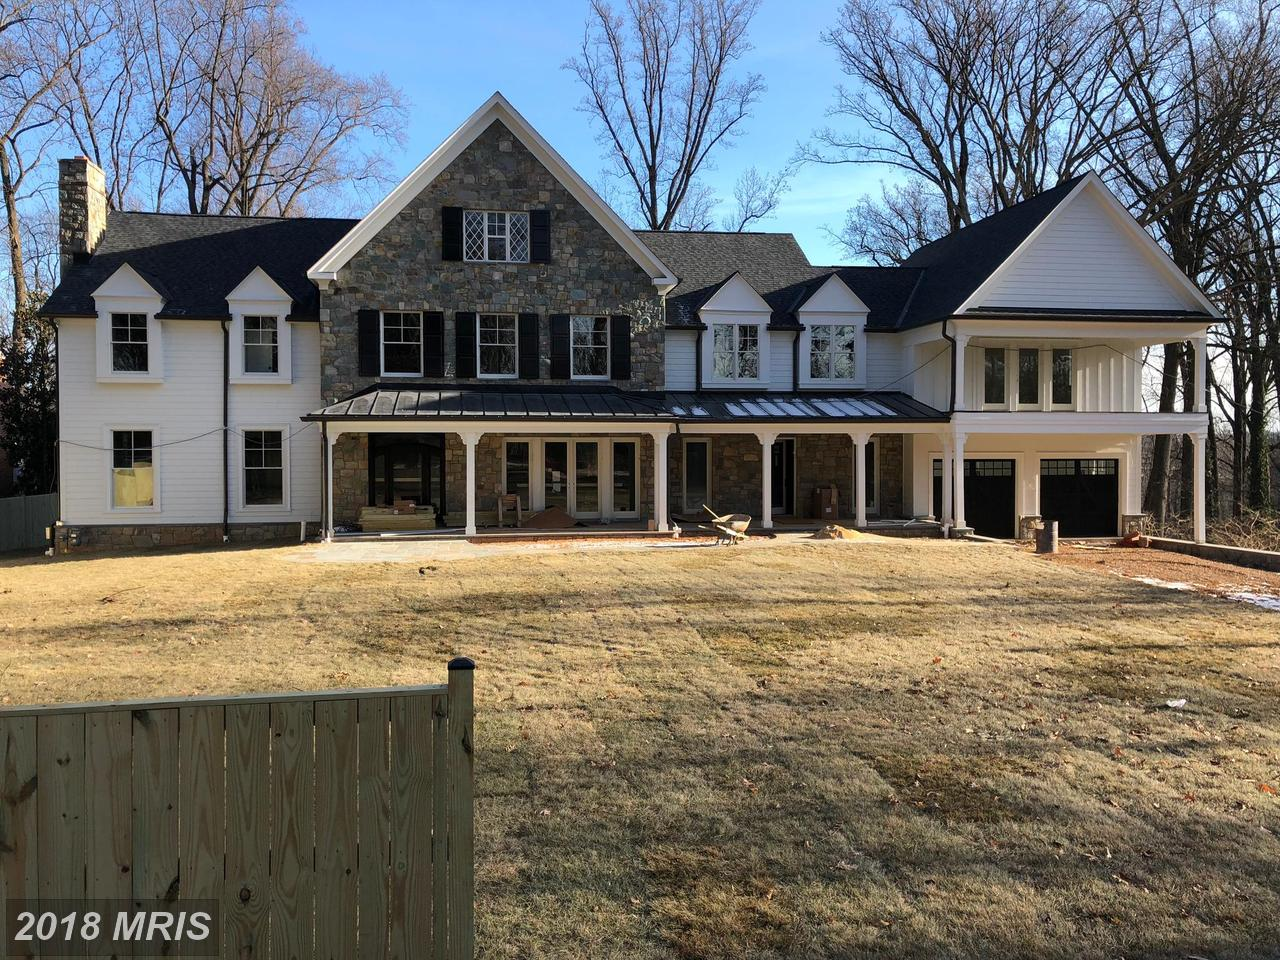 Maison unifamiliale pour l Vente à Manor, Detached - BETHESDA, MD 9117 BURDETTE RD Bethesda, Maryland,20817 États-Unis